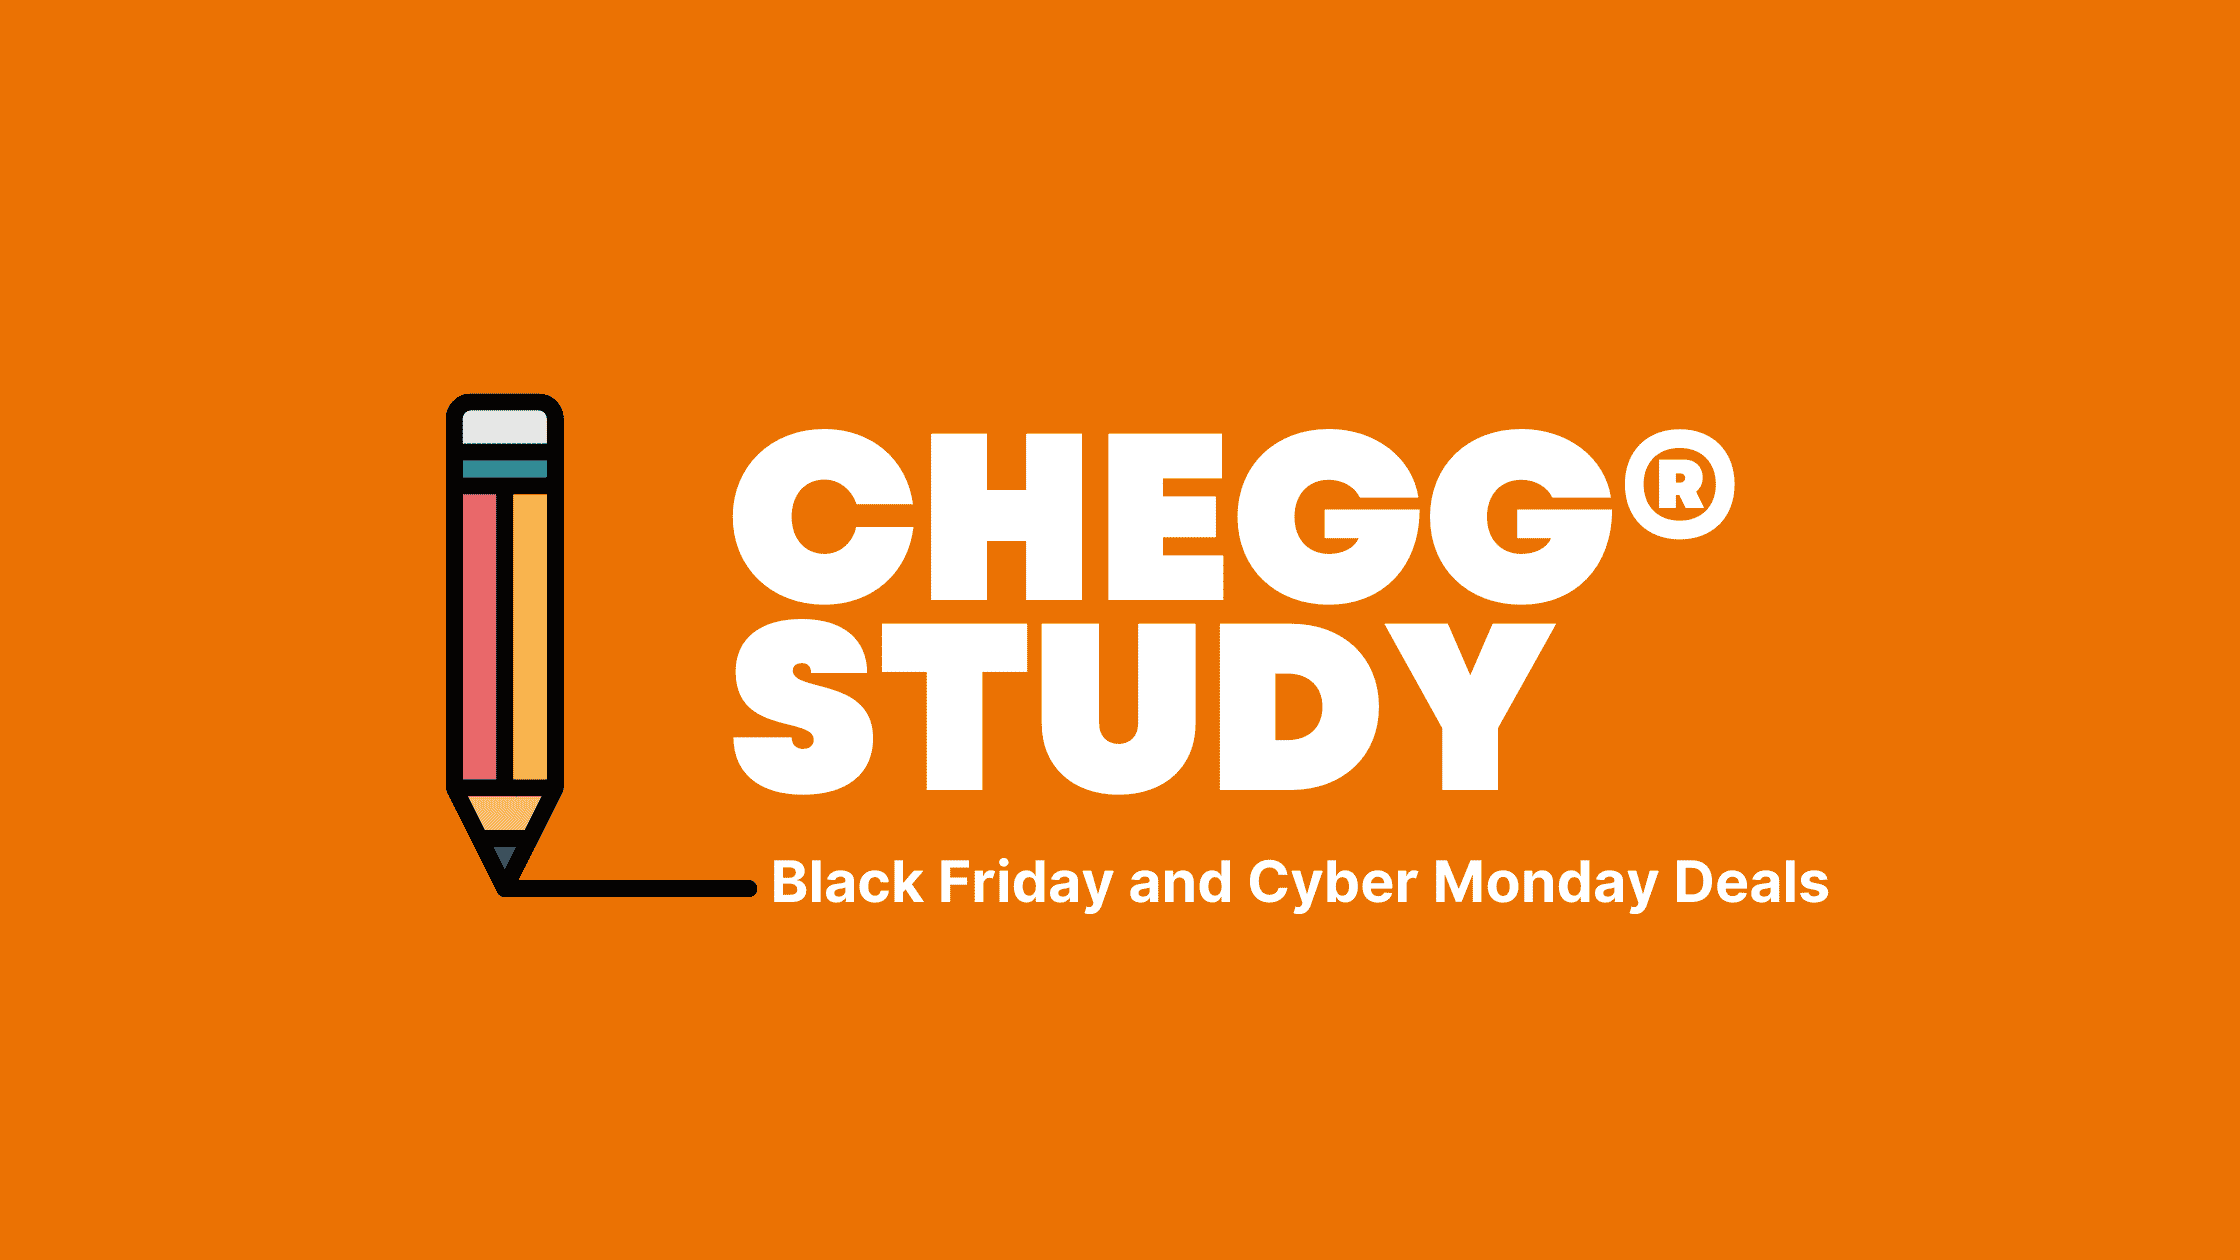 Chegg Study Black Friday deals in 2021